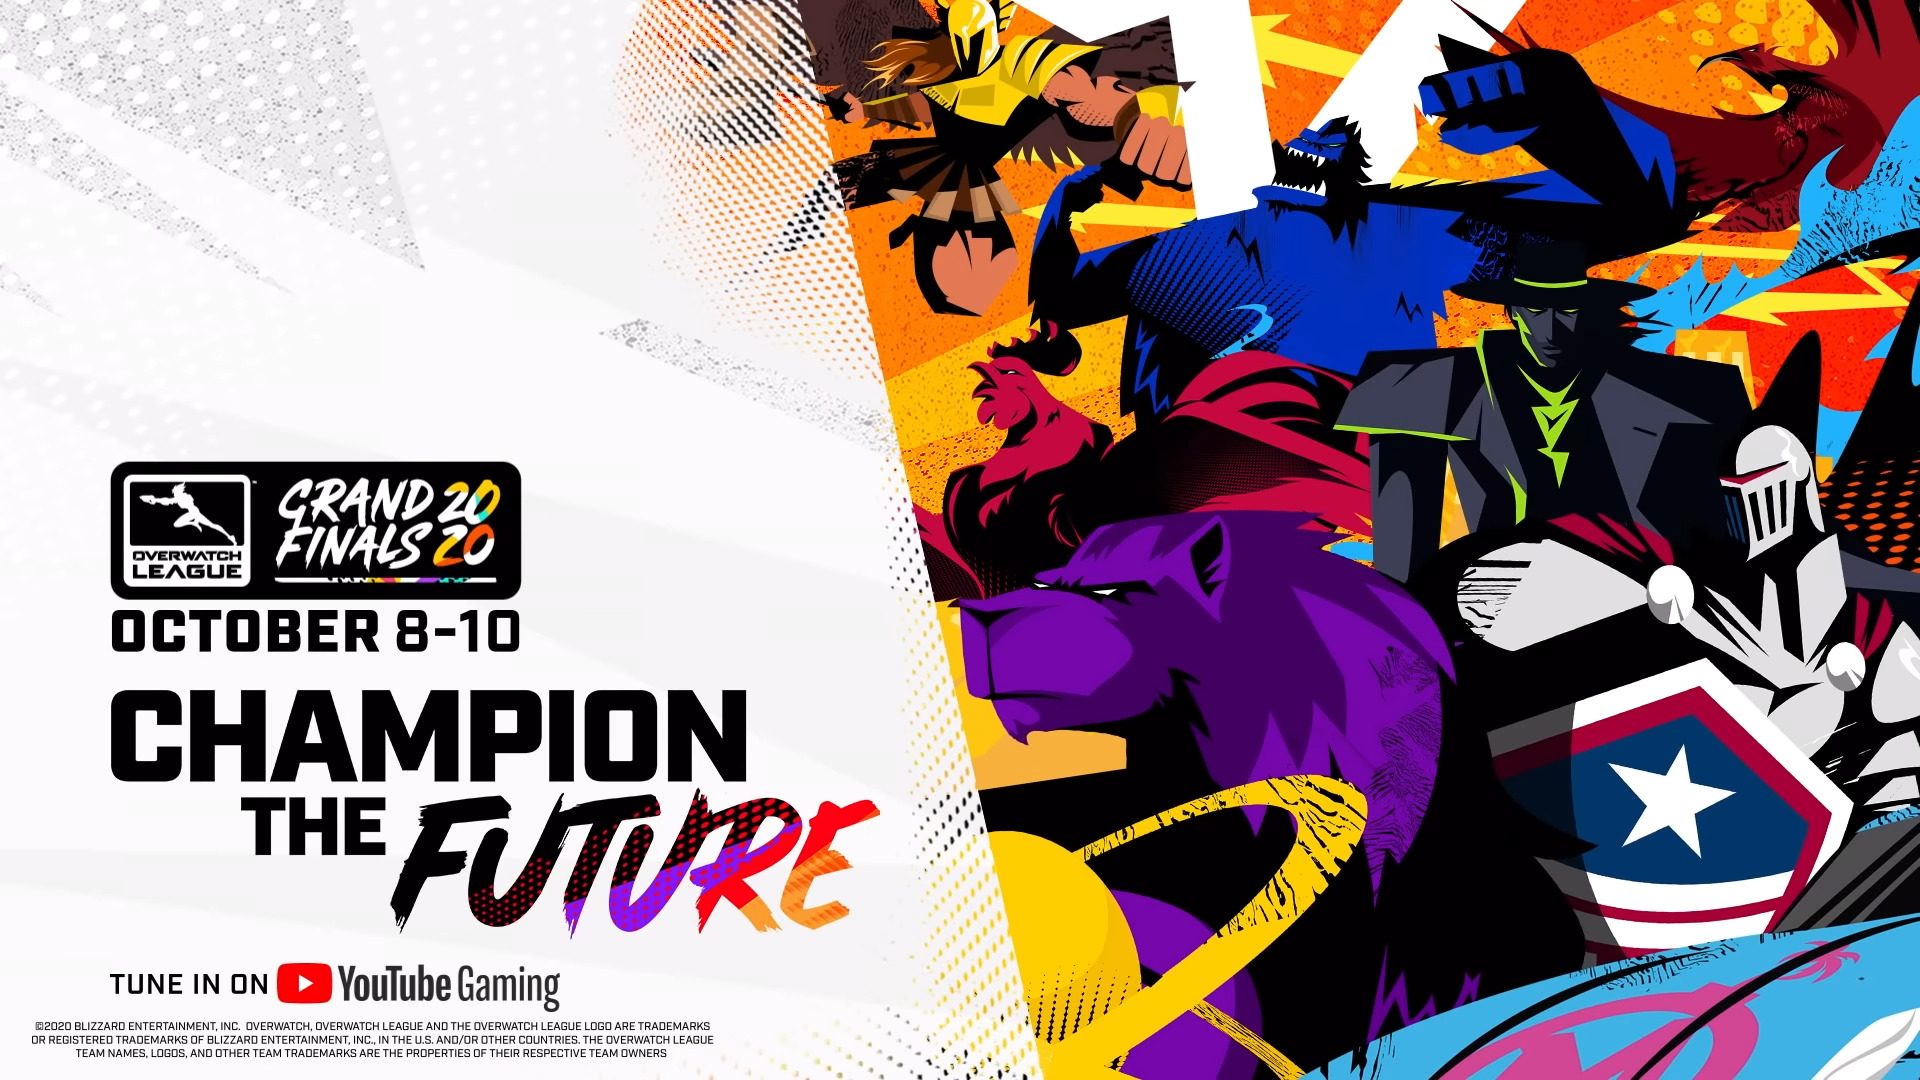 OWL – All-Star 2020 Will Hold Asia And North America Division, Features Widowmaker 1v1, Talent Takedown, And More